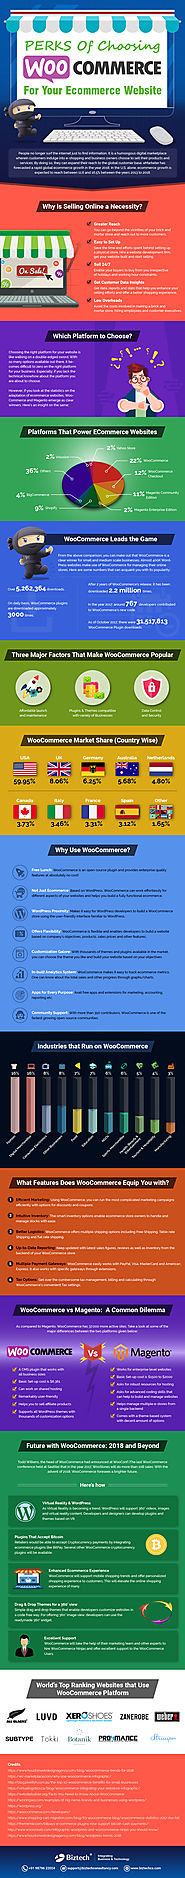 Perks of Choosing WooCommerce for Your Ecommerce Website - Infographic